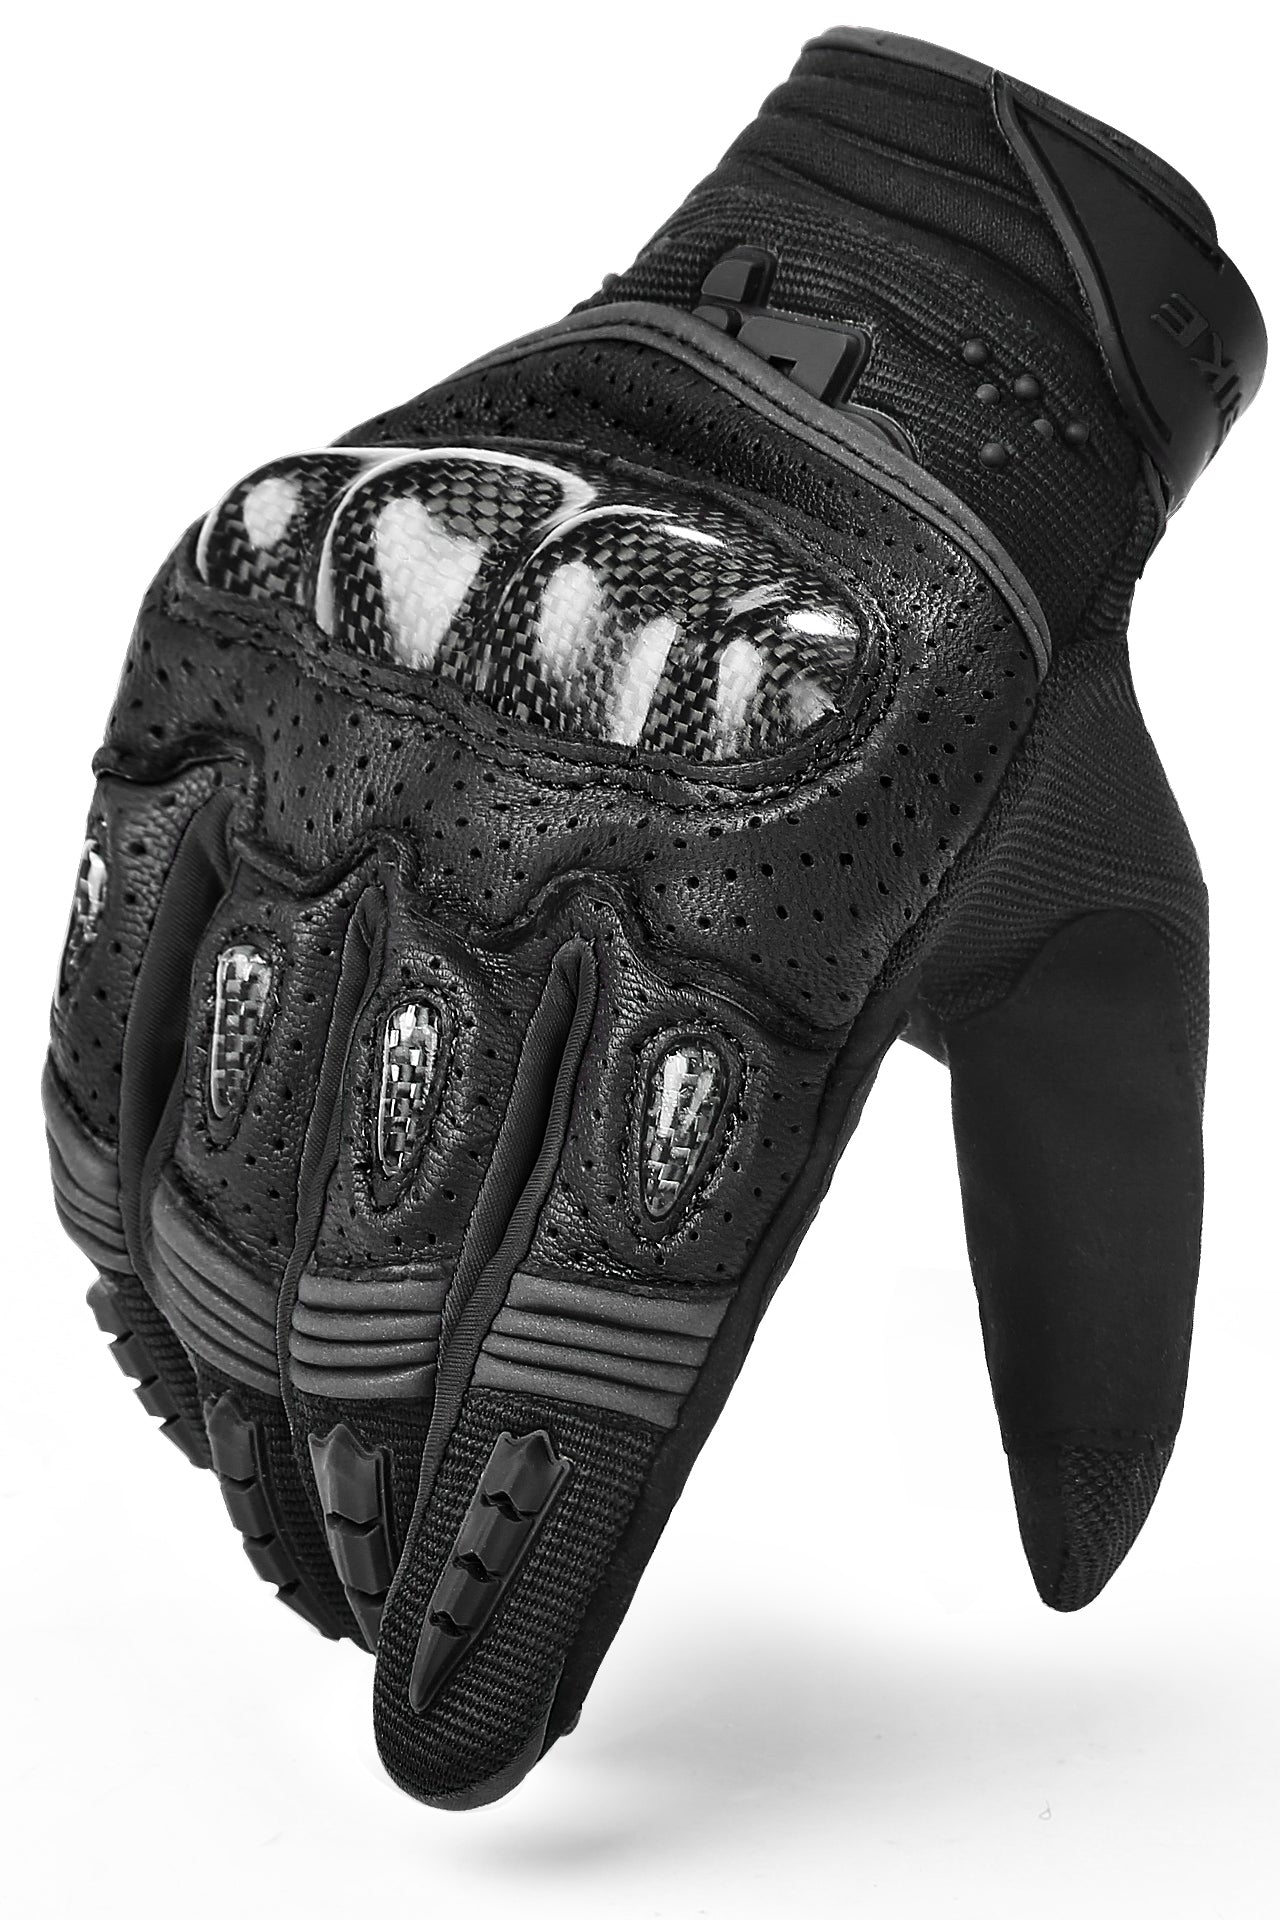 Urban & Cross Country Motorcycle Glove Black